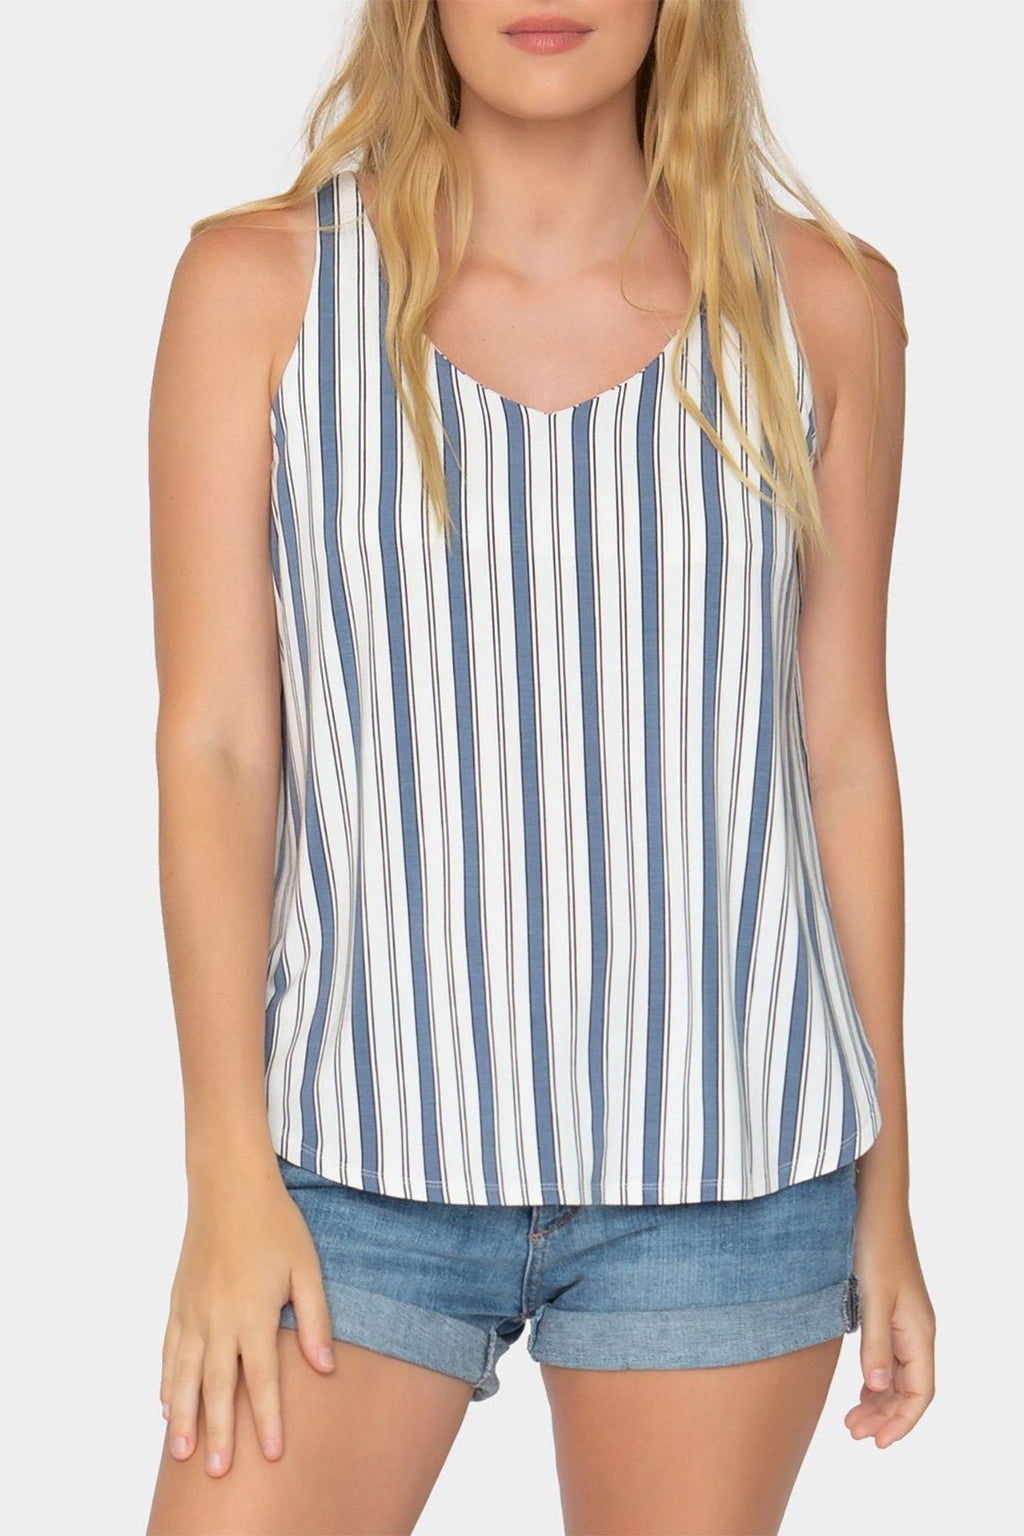 Ansley Top